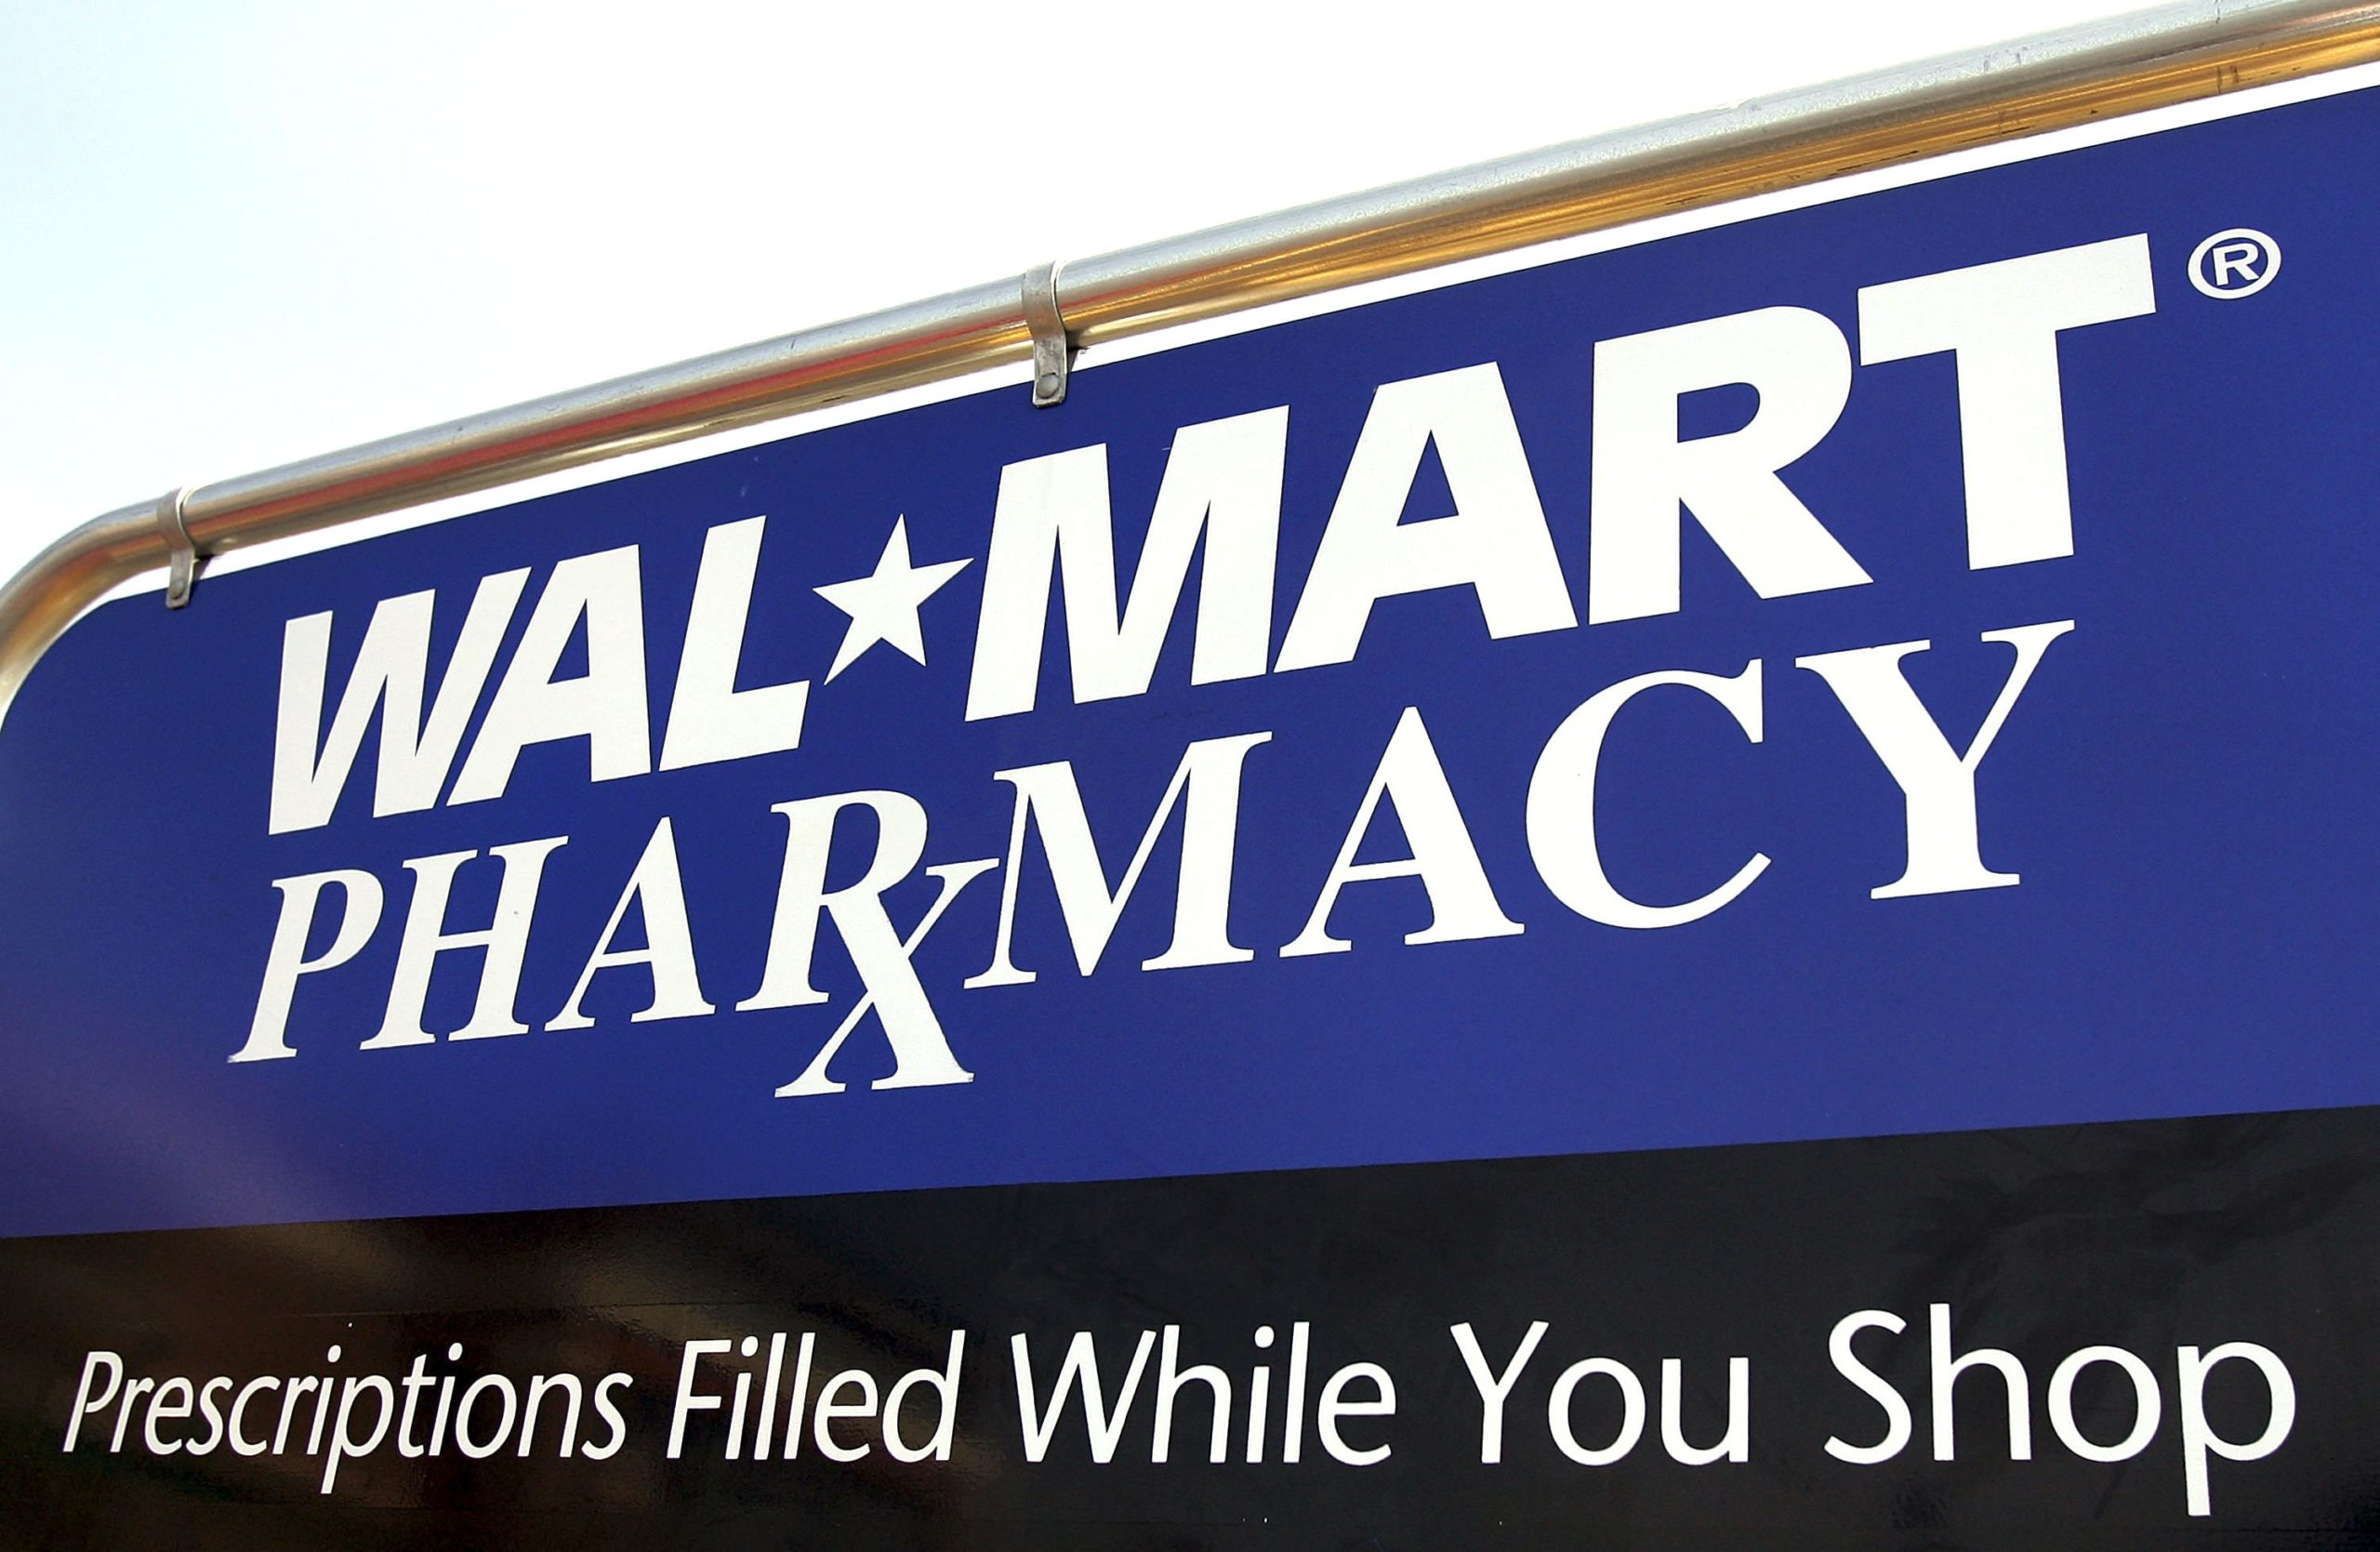 A sign for a Walmart pharmacy seen in Chicago, Illinois. (Tim Boyle/Getty Images)